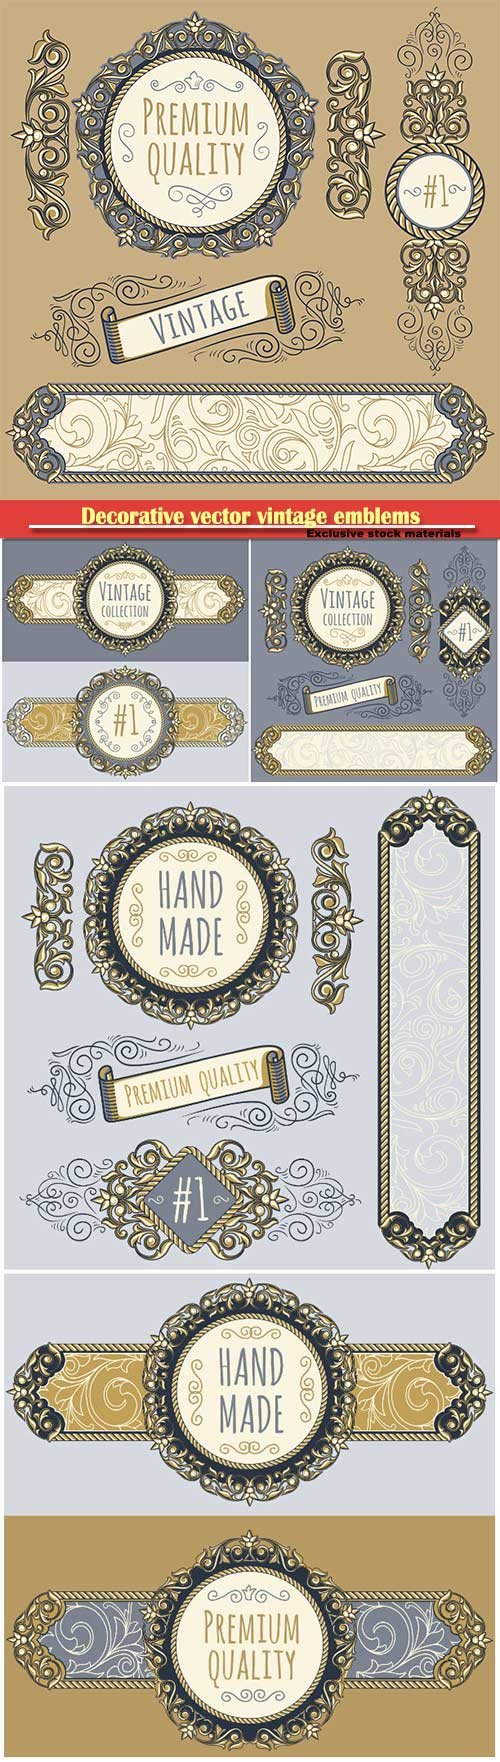 Decorative vector vintage emblems